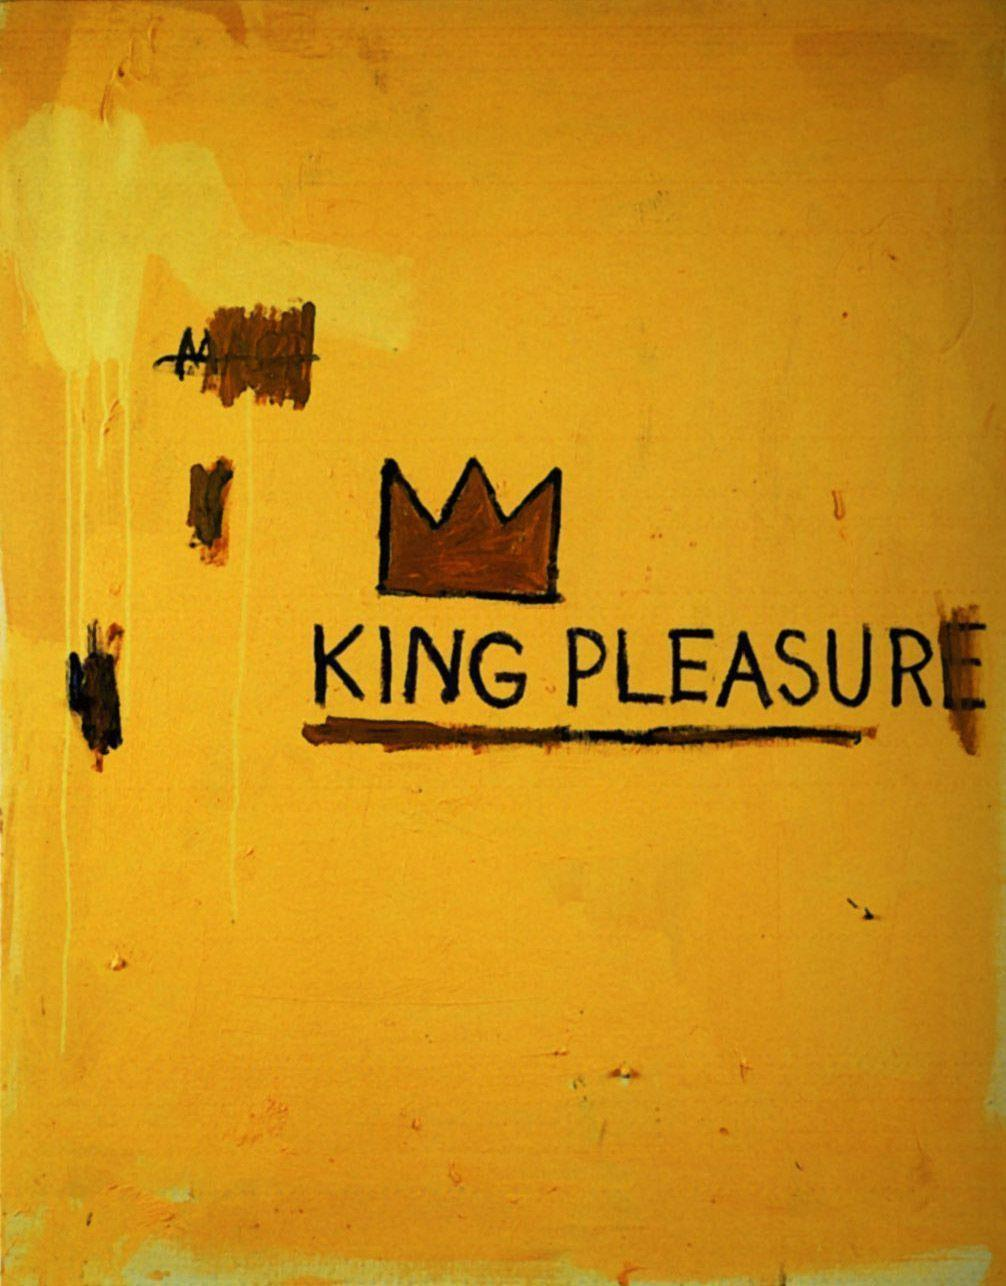 King Pleasure - Jean-Michel Basquiat - WikiArt.